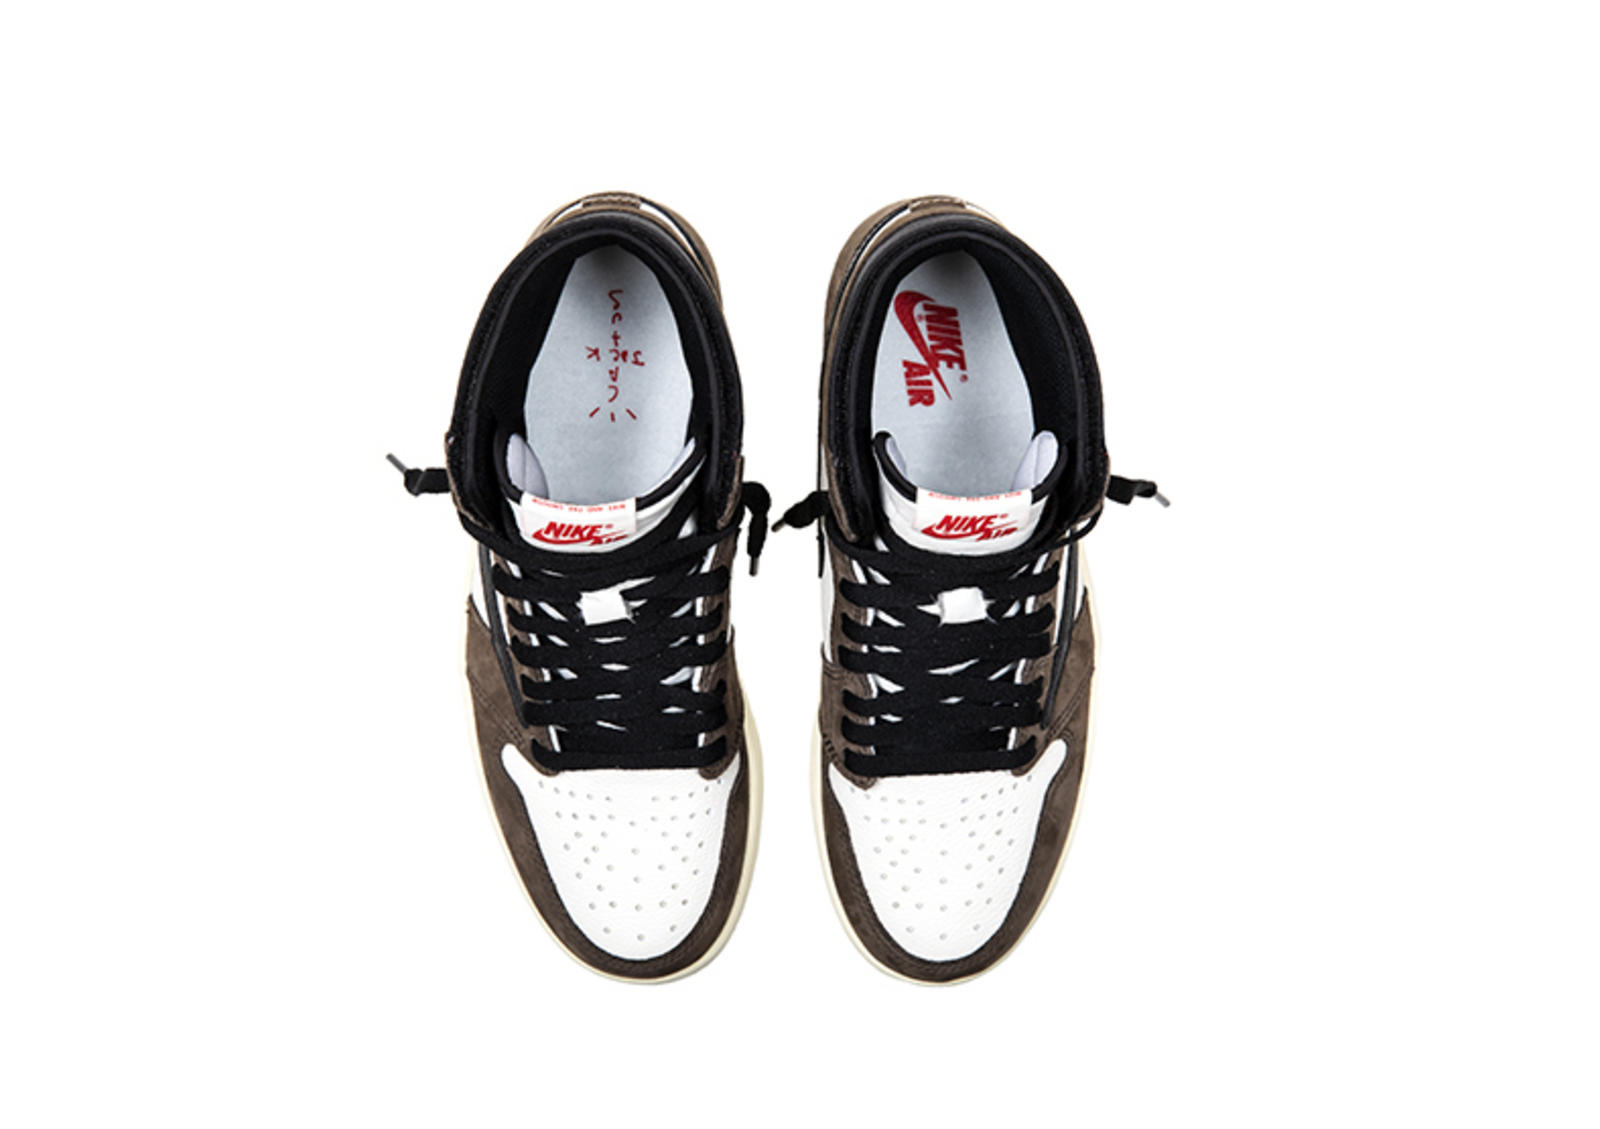 Travis Scott Air Jordan I High OG and Apparel Collection Official Images and Release Date 24